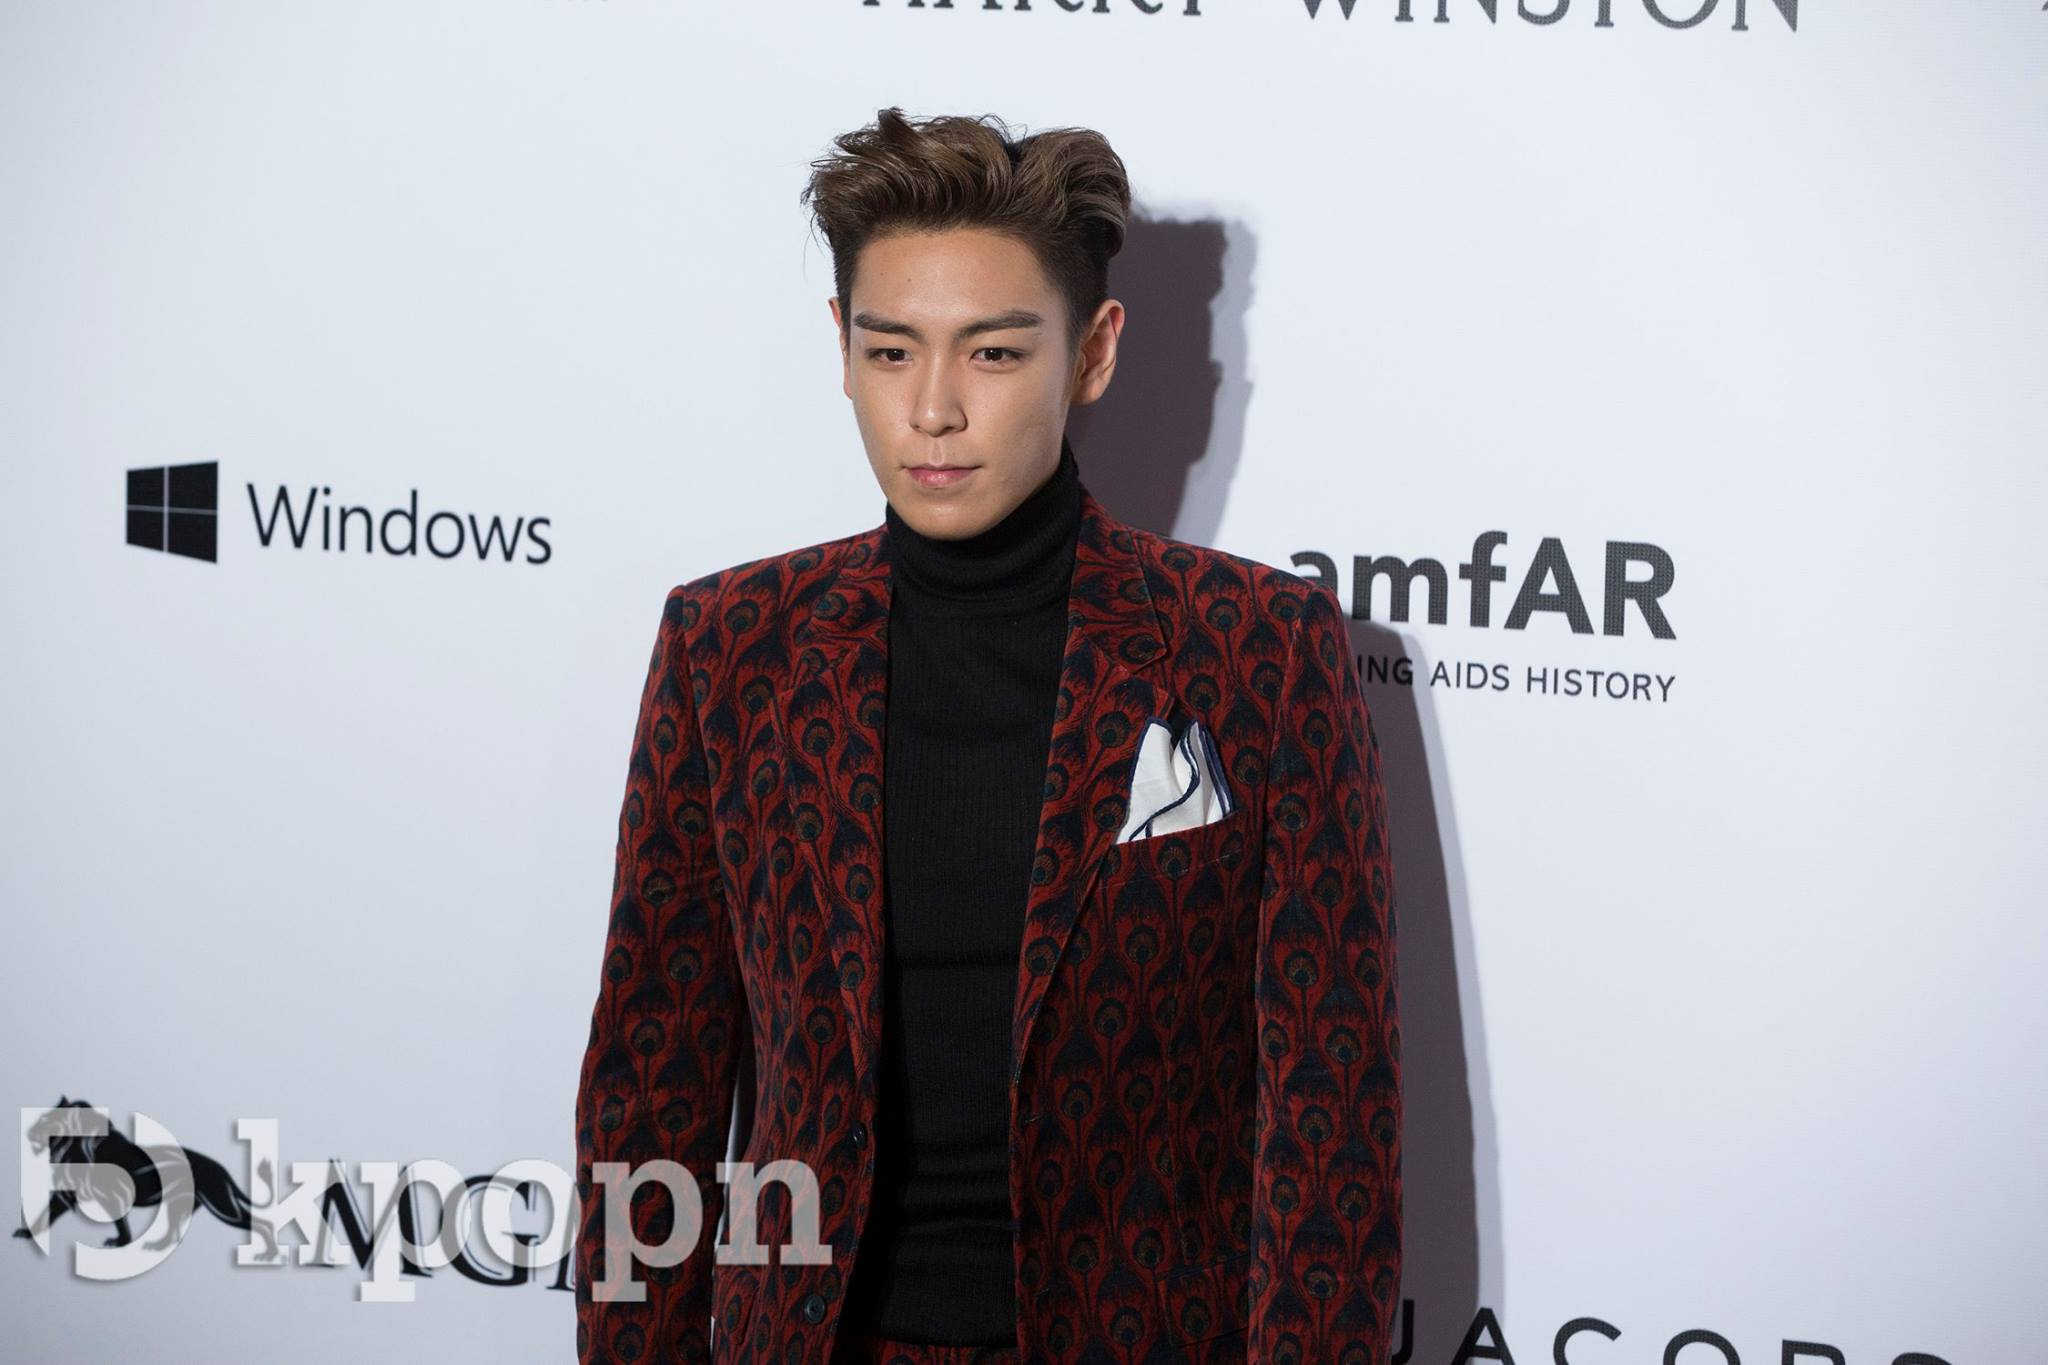 TOP amfAR Hong Kong by KPopcn 2015-03-14 008.jpg